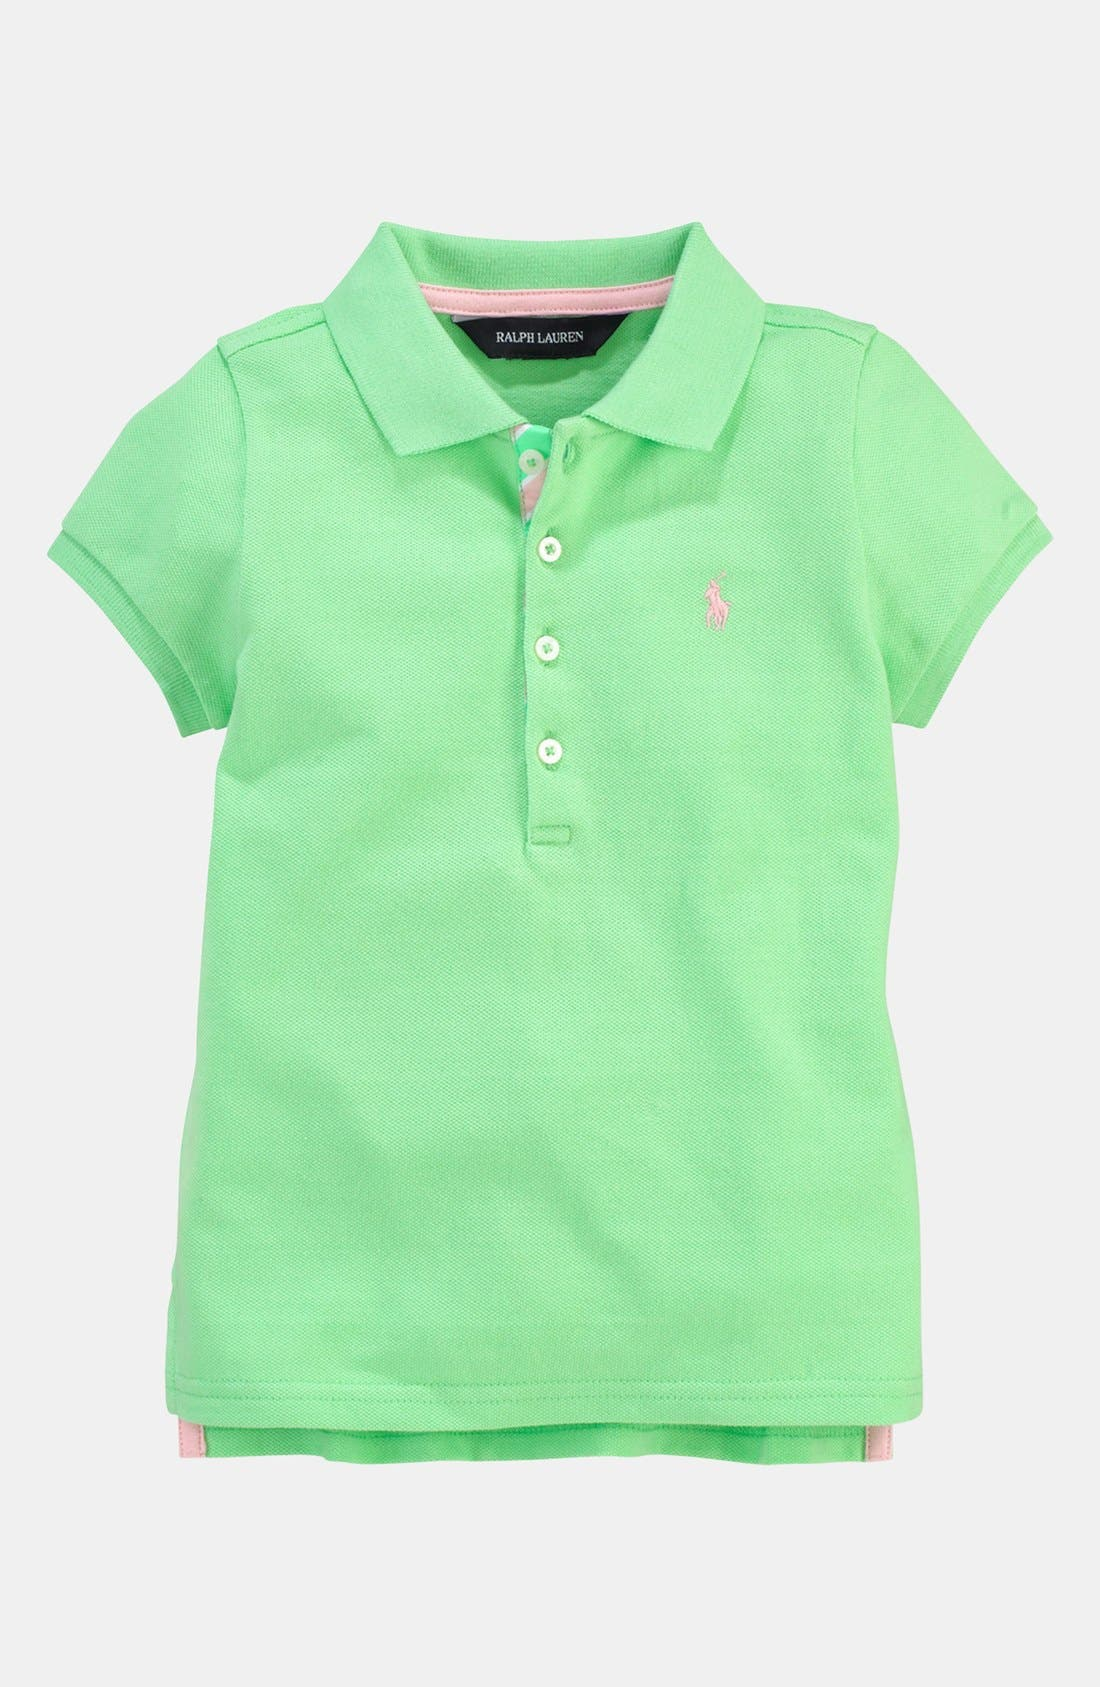 Main Image - Ralph Lauren Polo Shirt (Toddler)